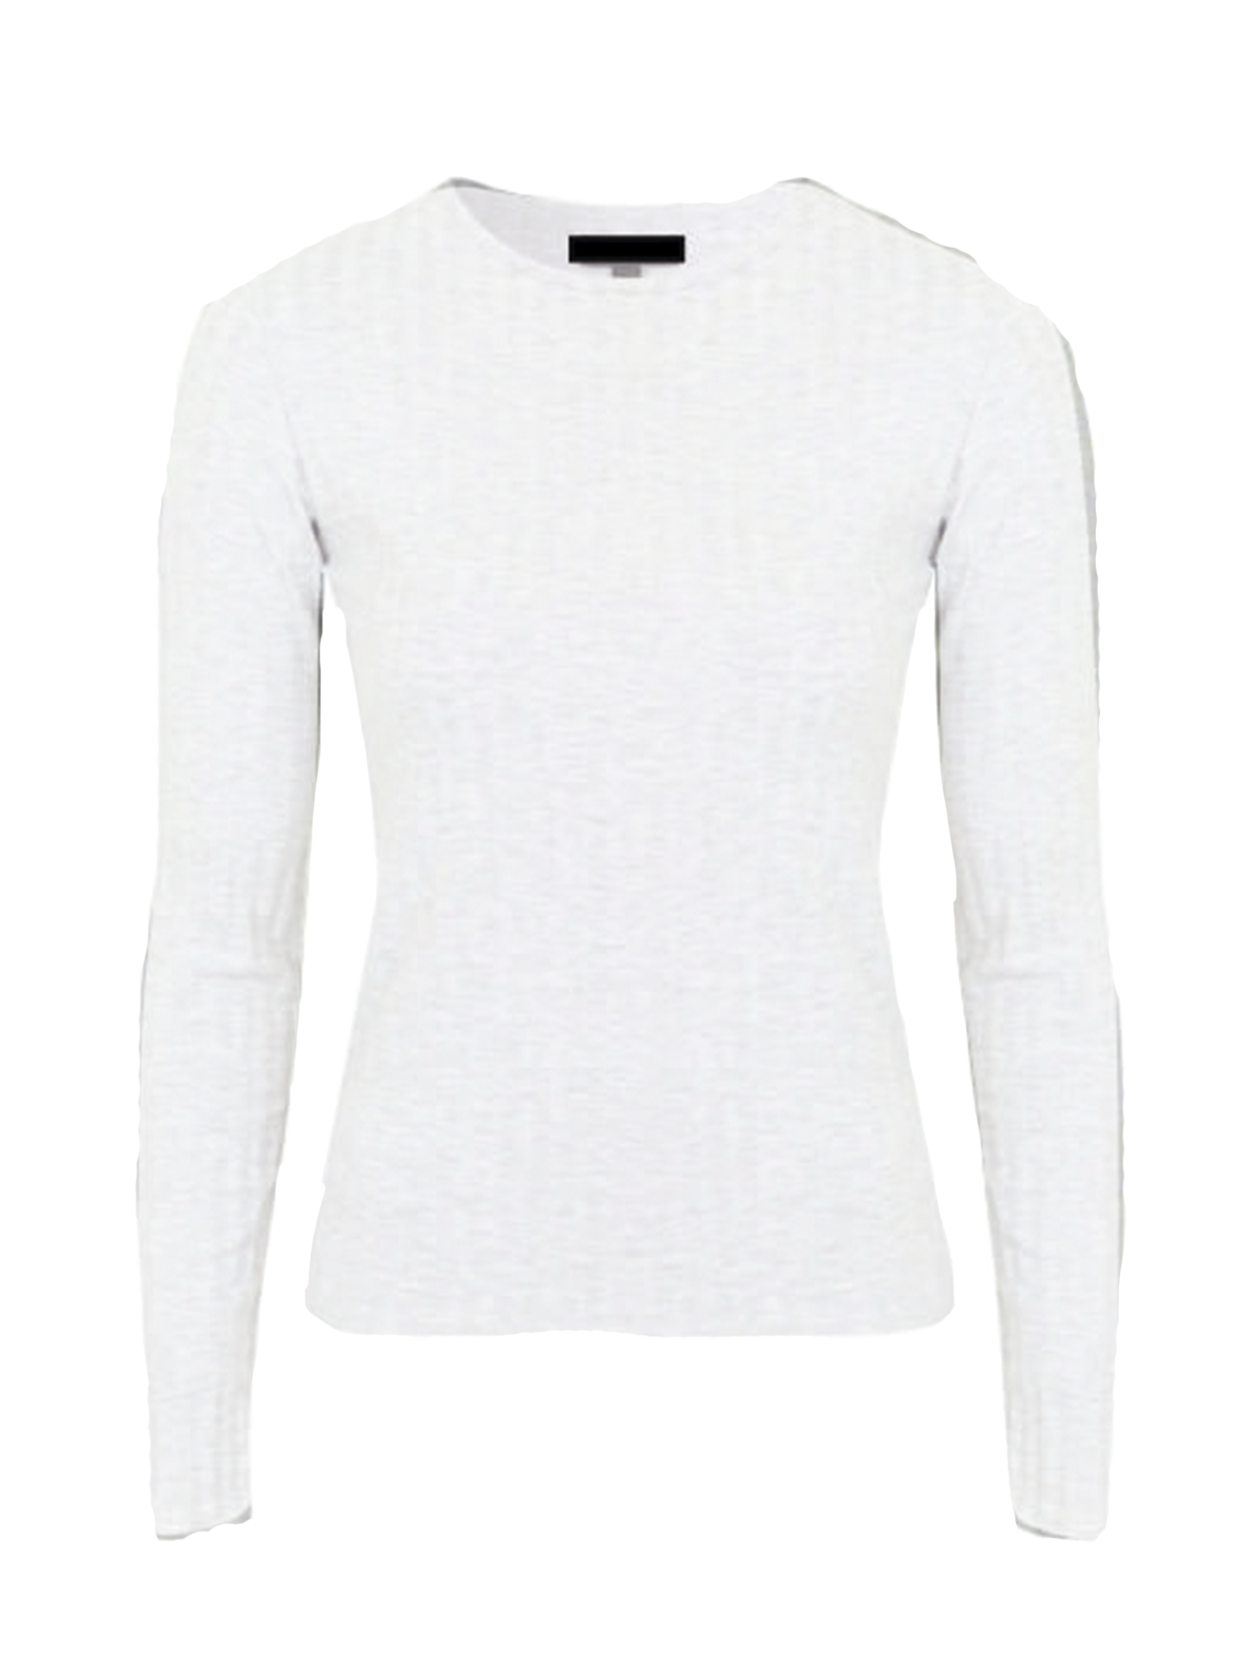 Womens long sleeve t-shirt BasicWomens long sleeve t-shirt by Black Star Wear. Slim fit, o-neck, lond sleeves. Small black label with #blackstar on the front. Natural cotton (90%) and lycra (10%) blend.<br><br>size: L<br>color: White<br>gender: female